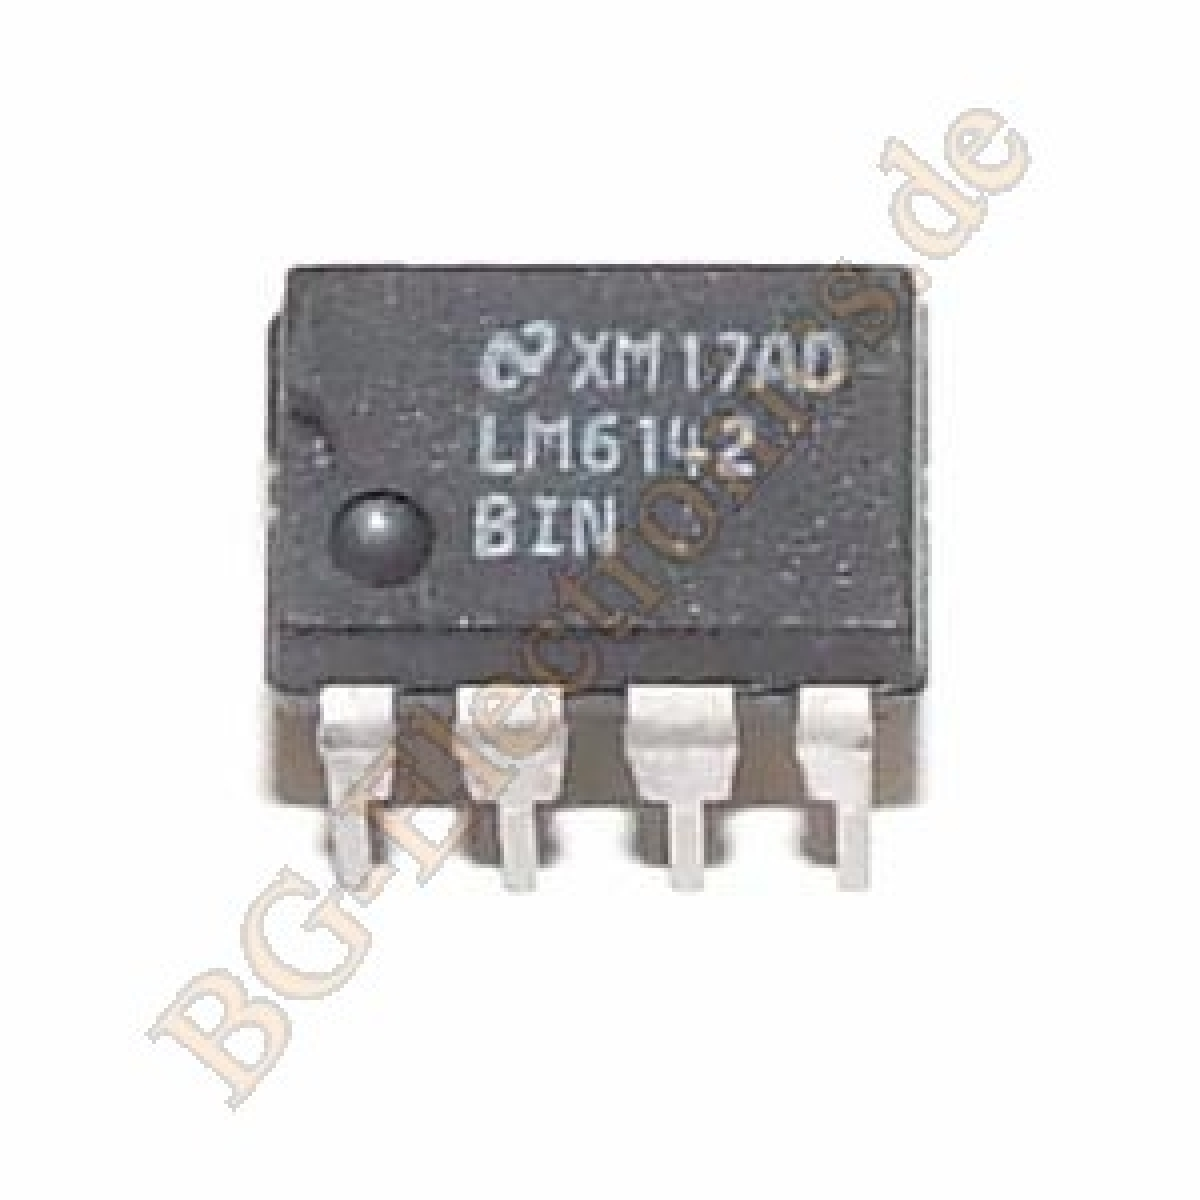 Lm6142bin Bg Electronics Lm6142bi Lm6142b Lm6142 Rail To Output Differential Amplifier High Speed Low Power 17 Mhz Input Operational